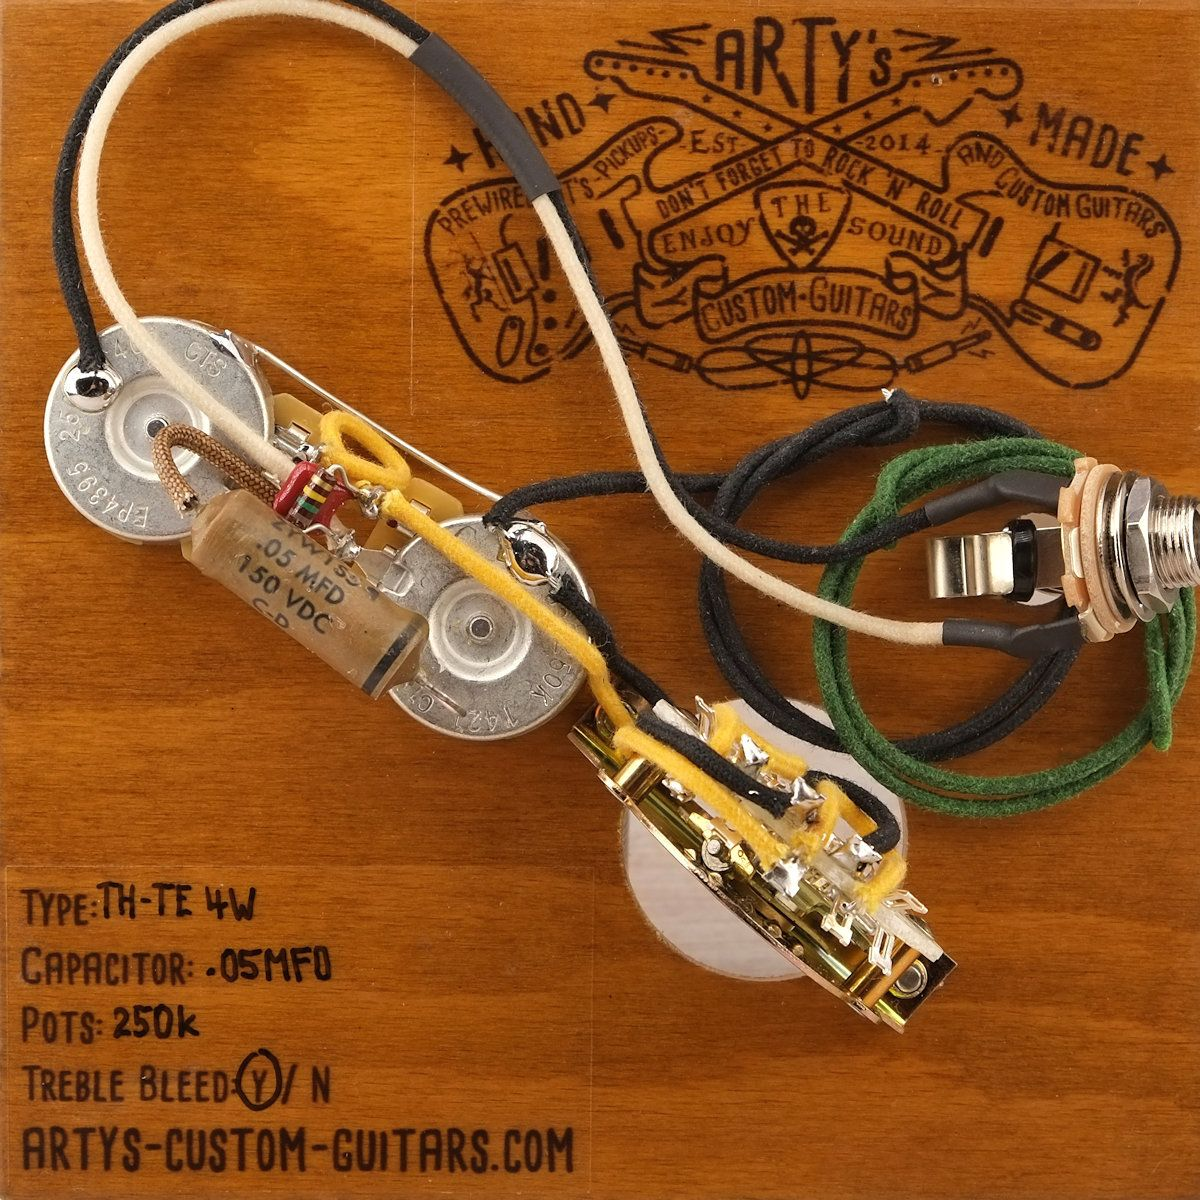 arty s custom guitars 4 way premium vintage pre wired prewired kit wiring assembly harness arty [ 1200 x 1200 Pixel ]